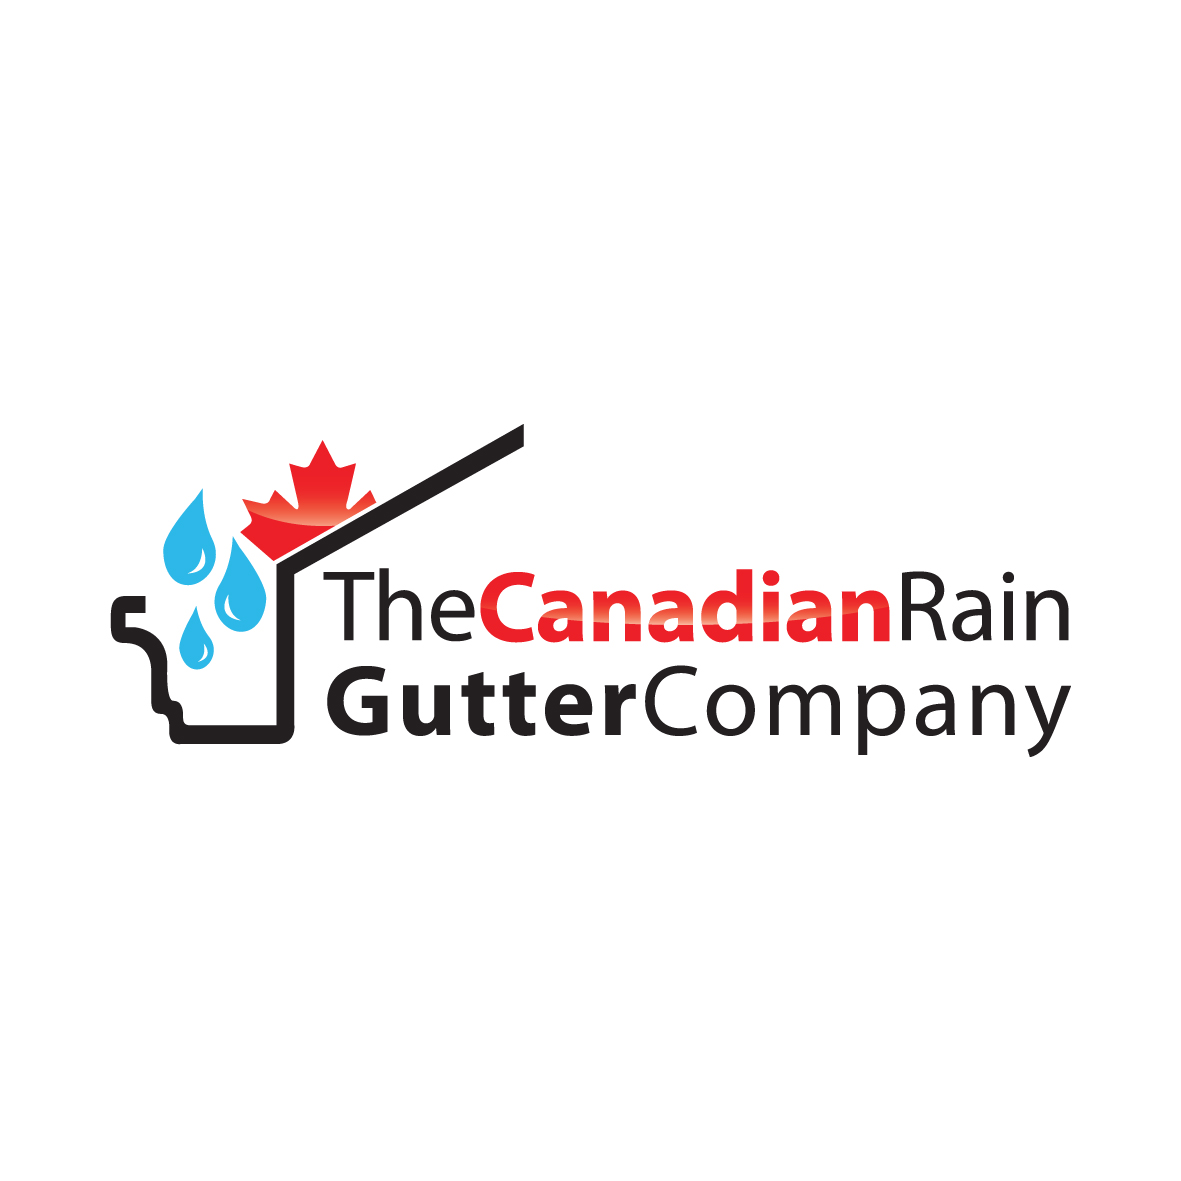 Logo Design by ex - Entry No. 3 in the Logo Design Contest The Canadian Rain Gutter Company.